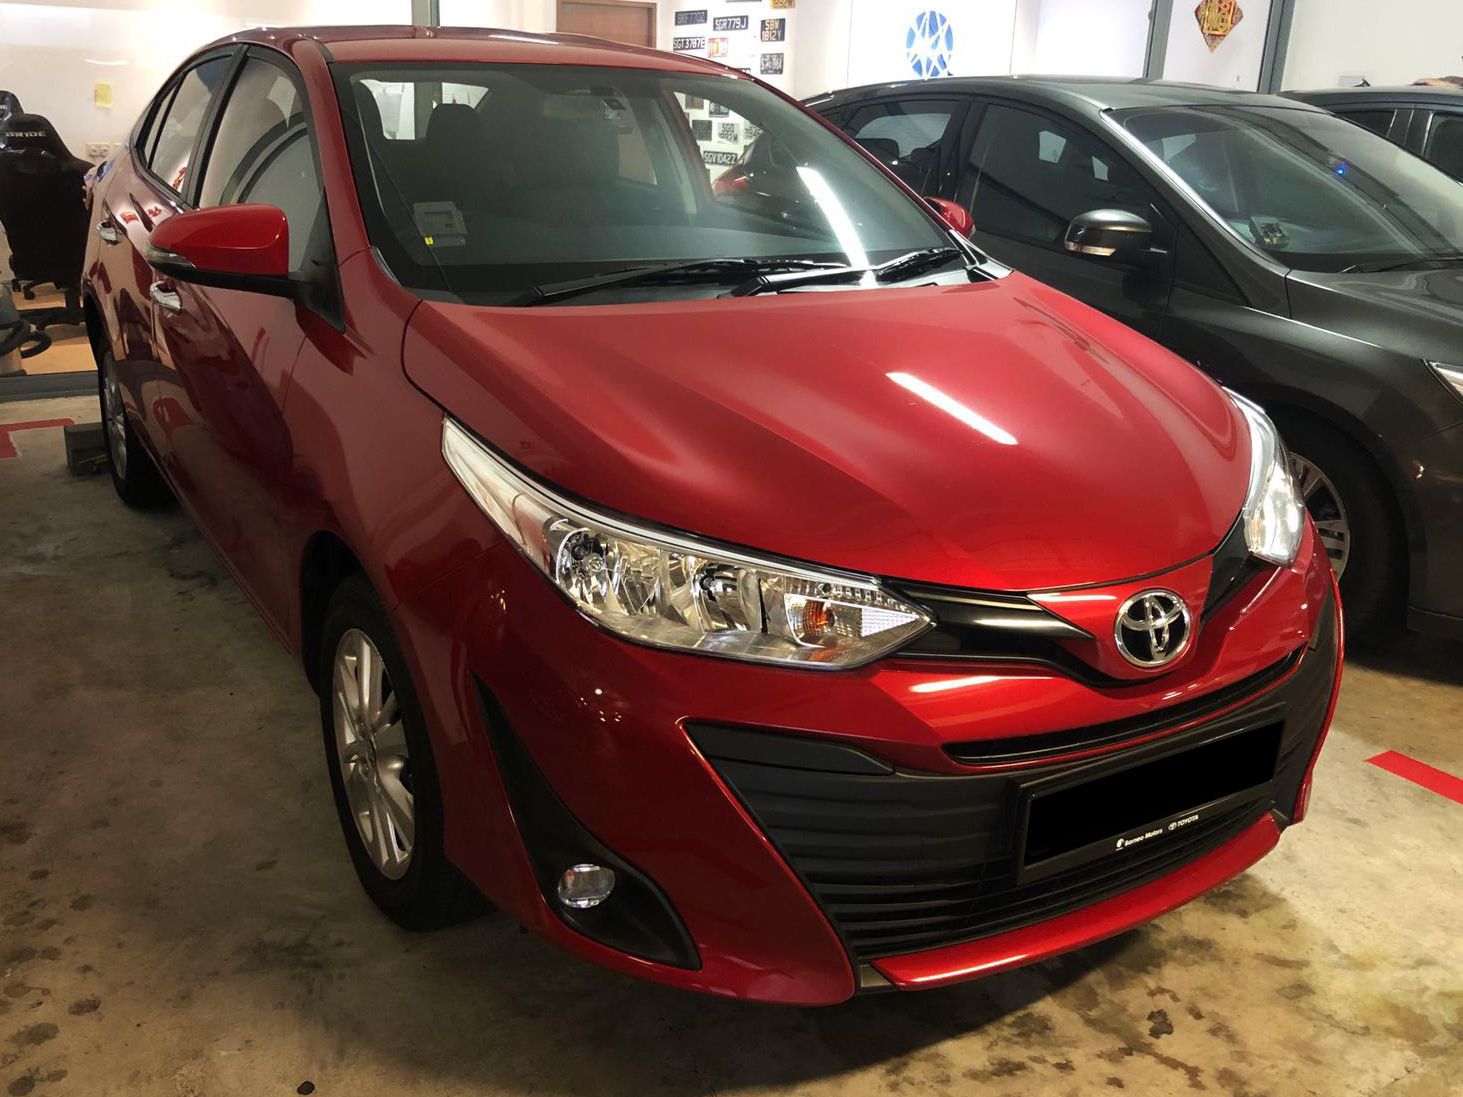 Toyota Vios 1.5 E [Red] (For Rent)